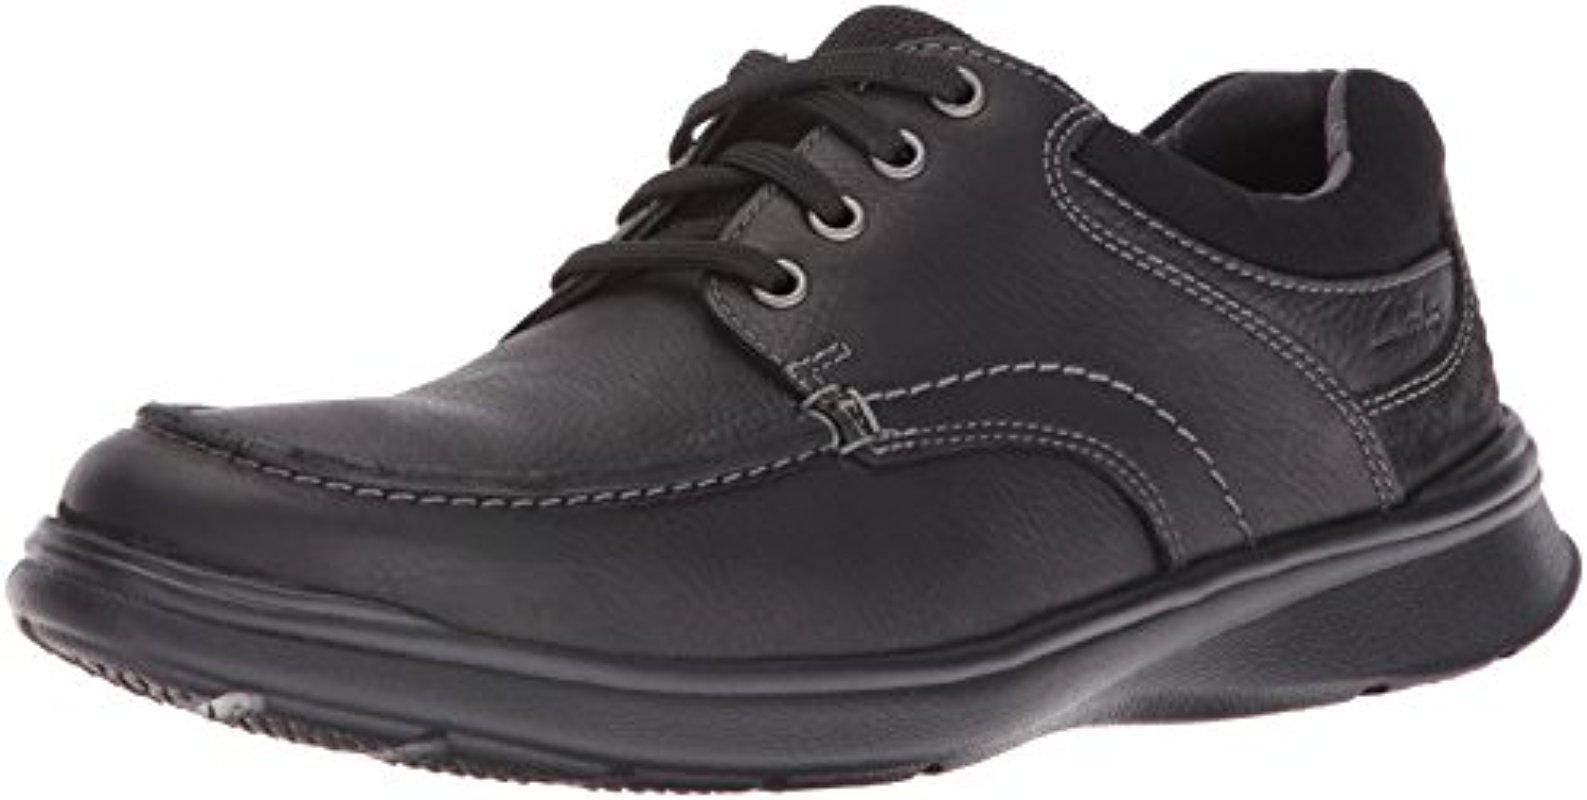 Clarks Cotrell Edge Leather Sneaker - Wide Width Available A7bBXs3